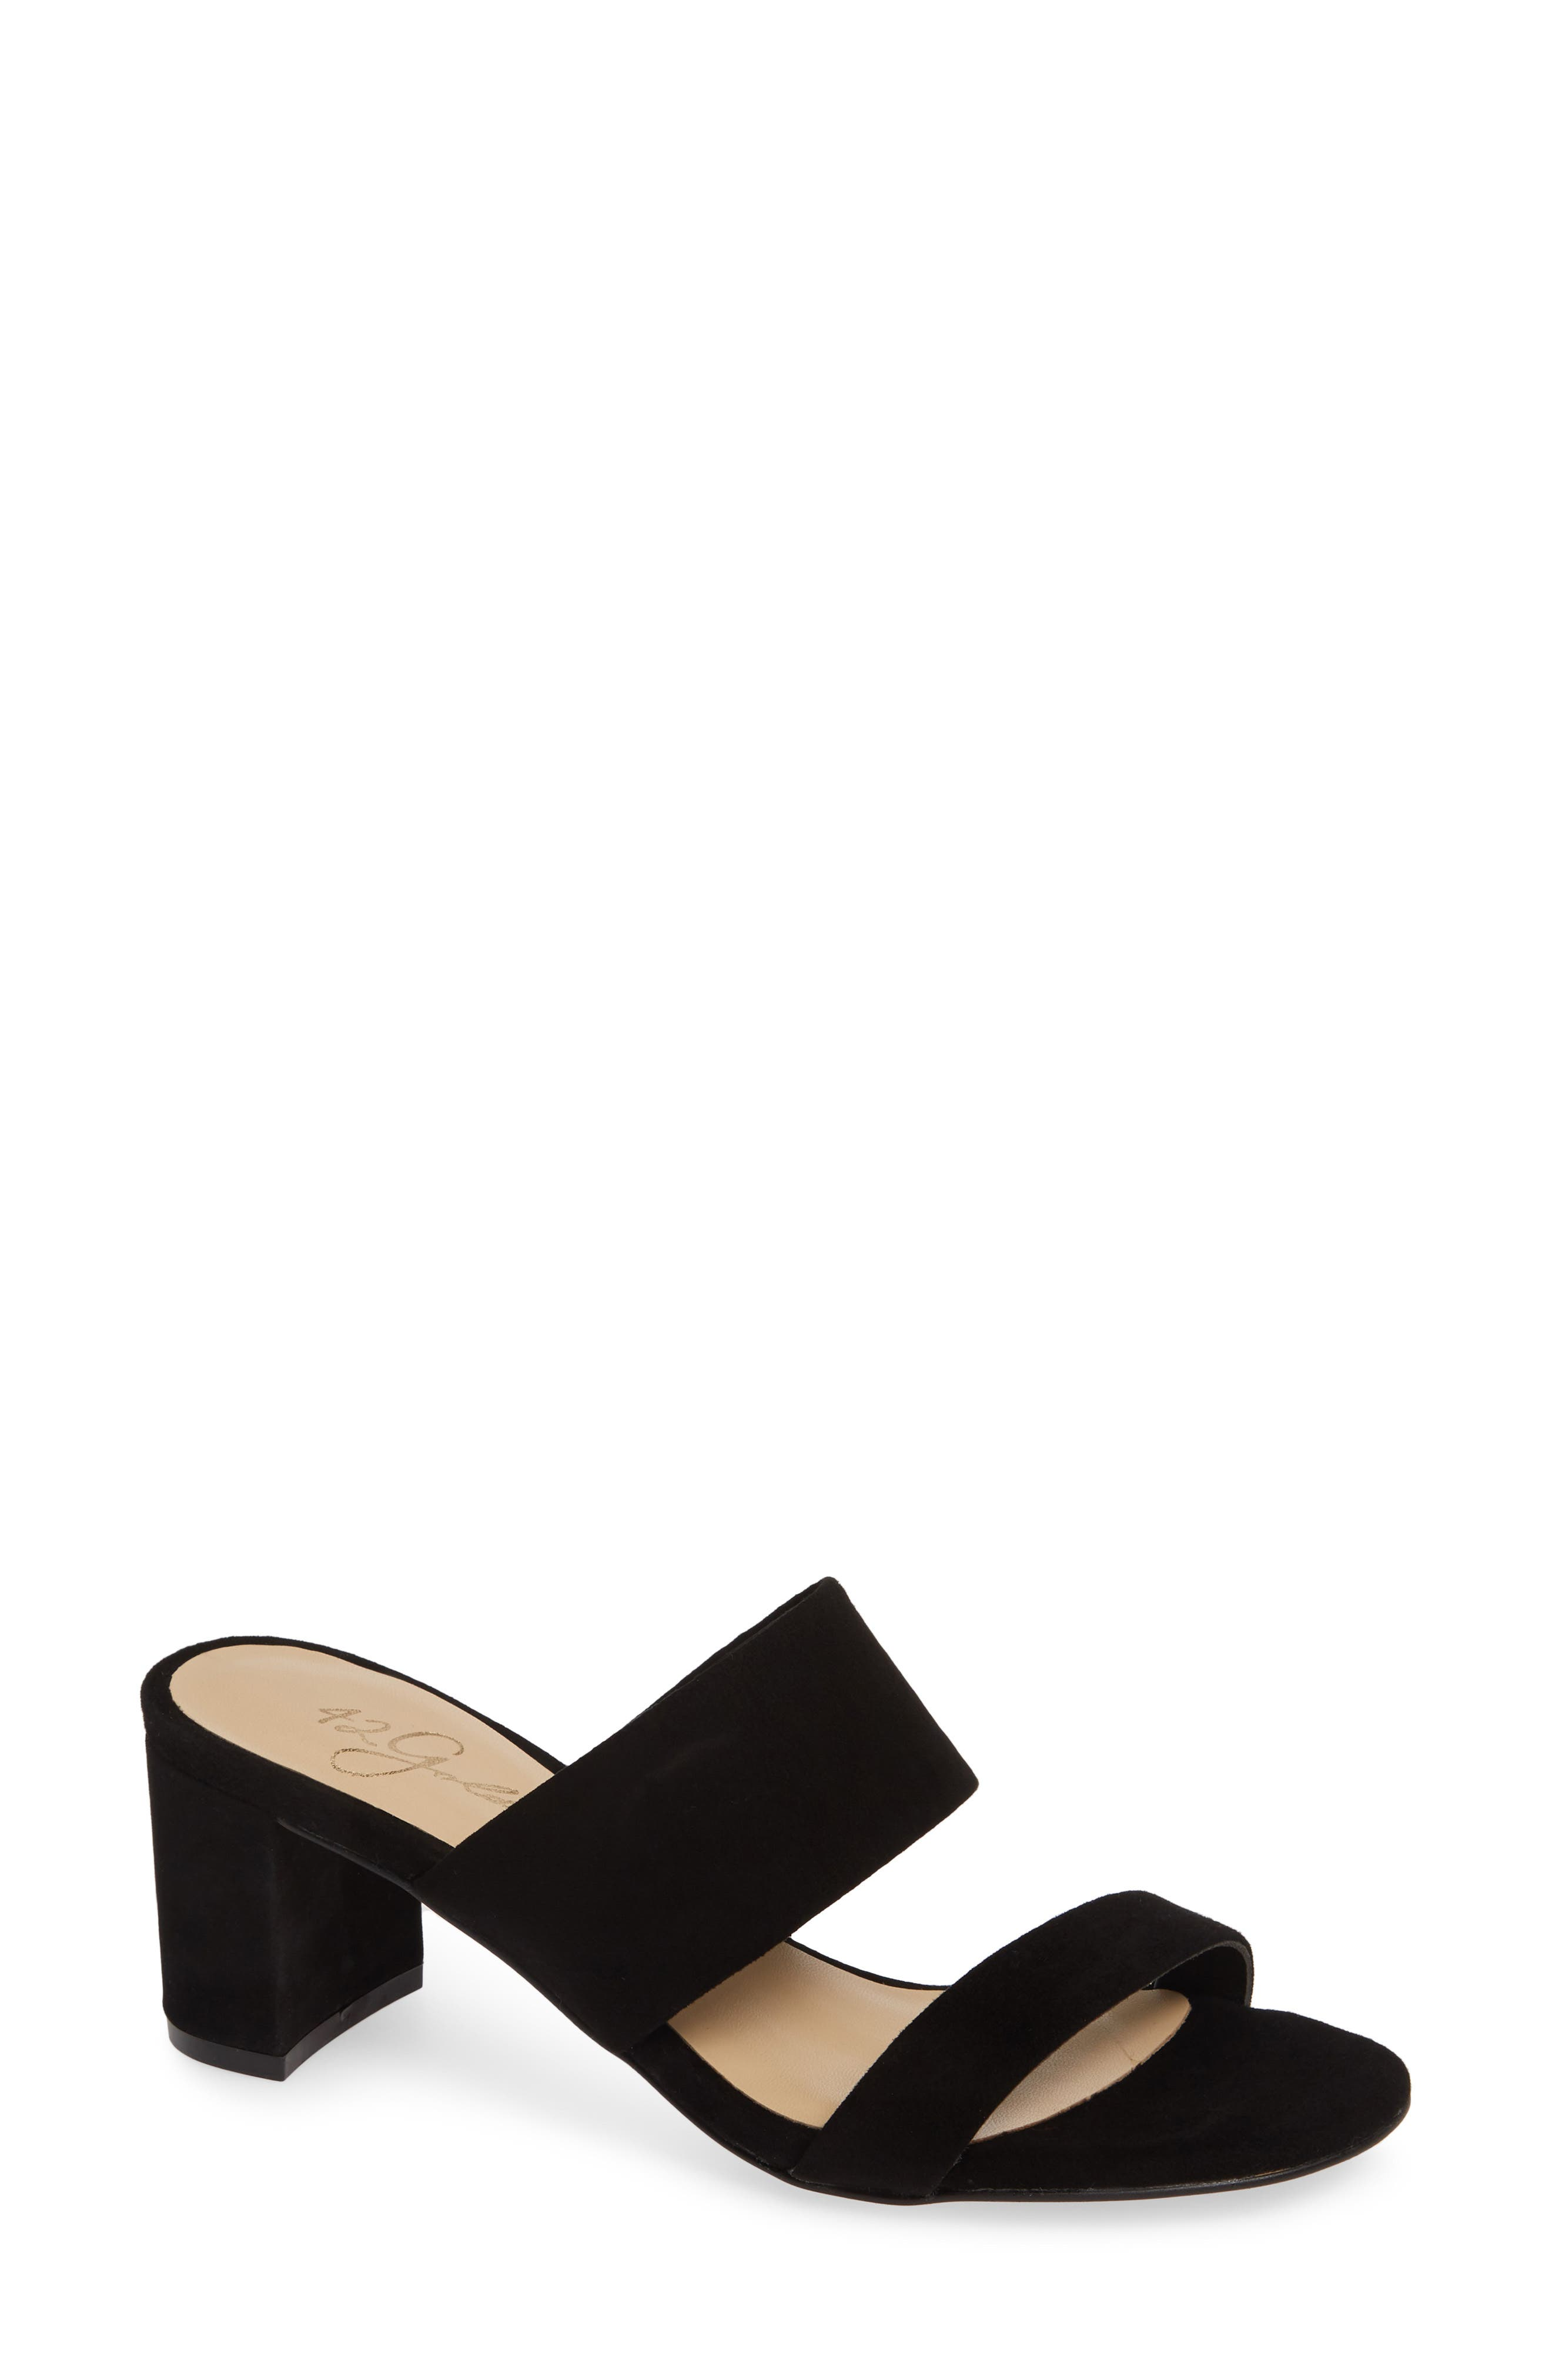 42 GOLD Liya Slide Sandal, Main, color, BLACK SUEDE